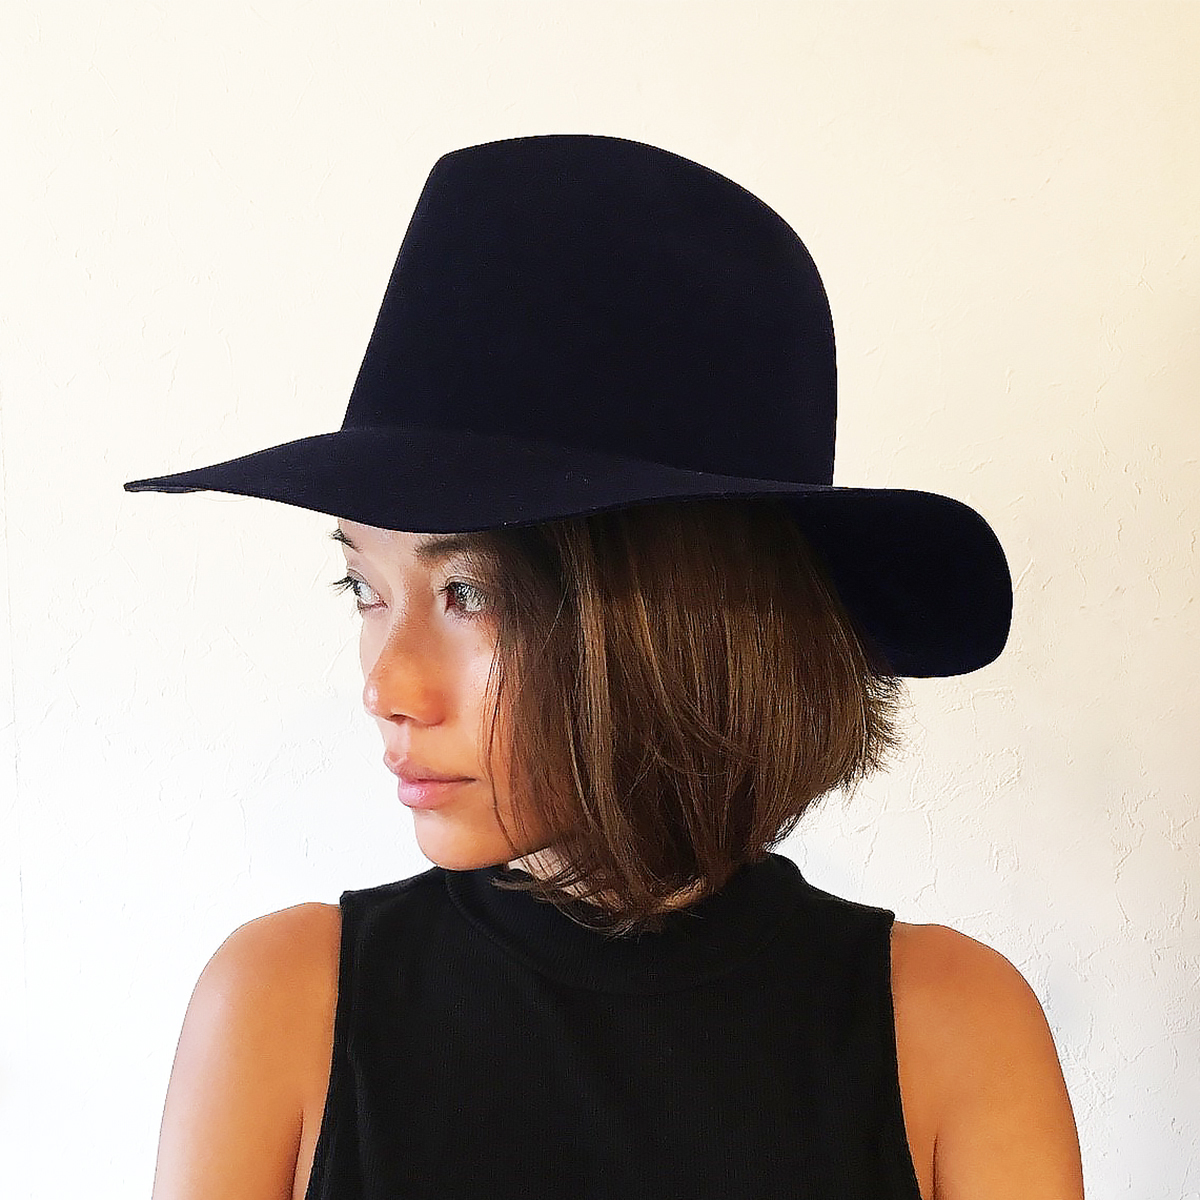 C-PLUS HEAD WEARS ANTEROPE HAT